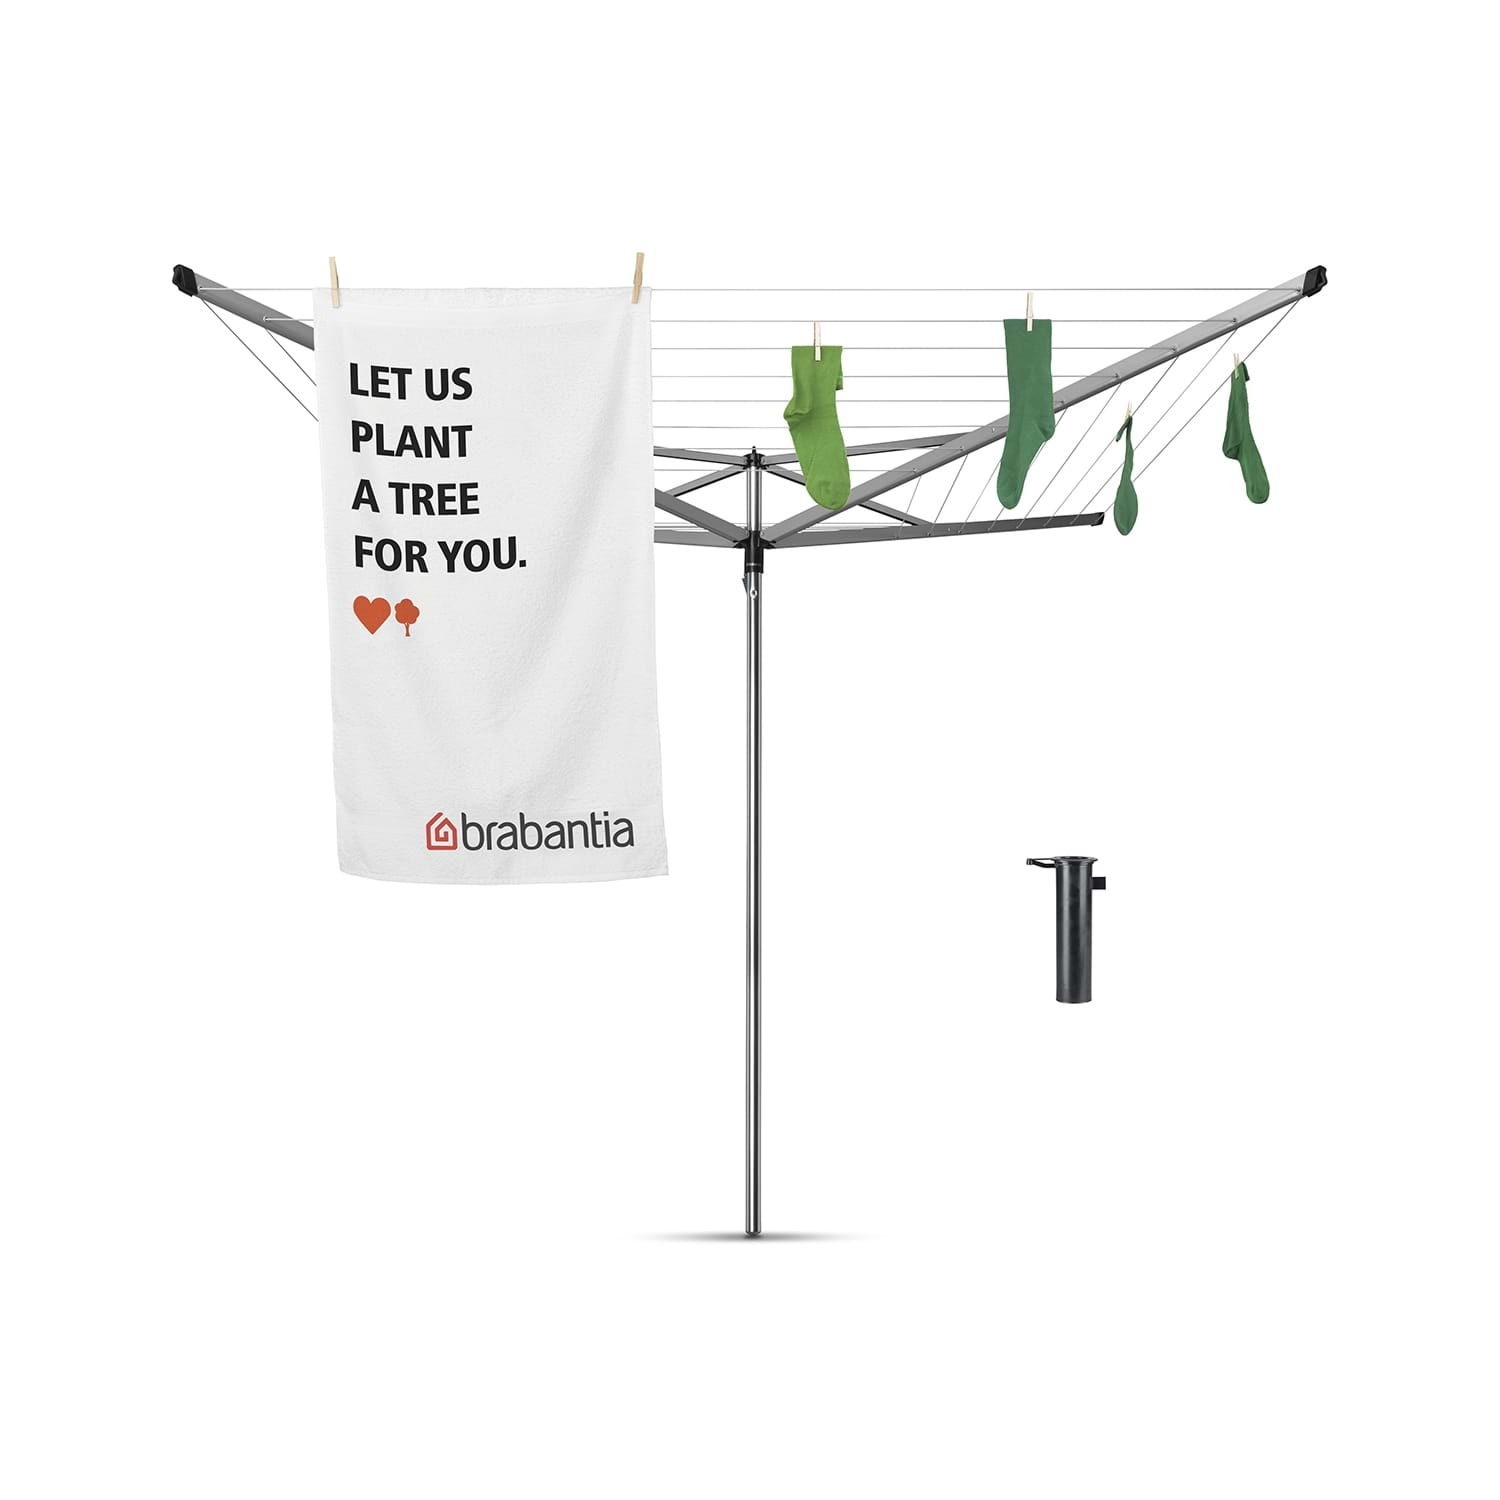 Image of Brabantia 40m 4 Arm Compact Rotary Drier, Metallic Grey